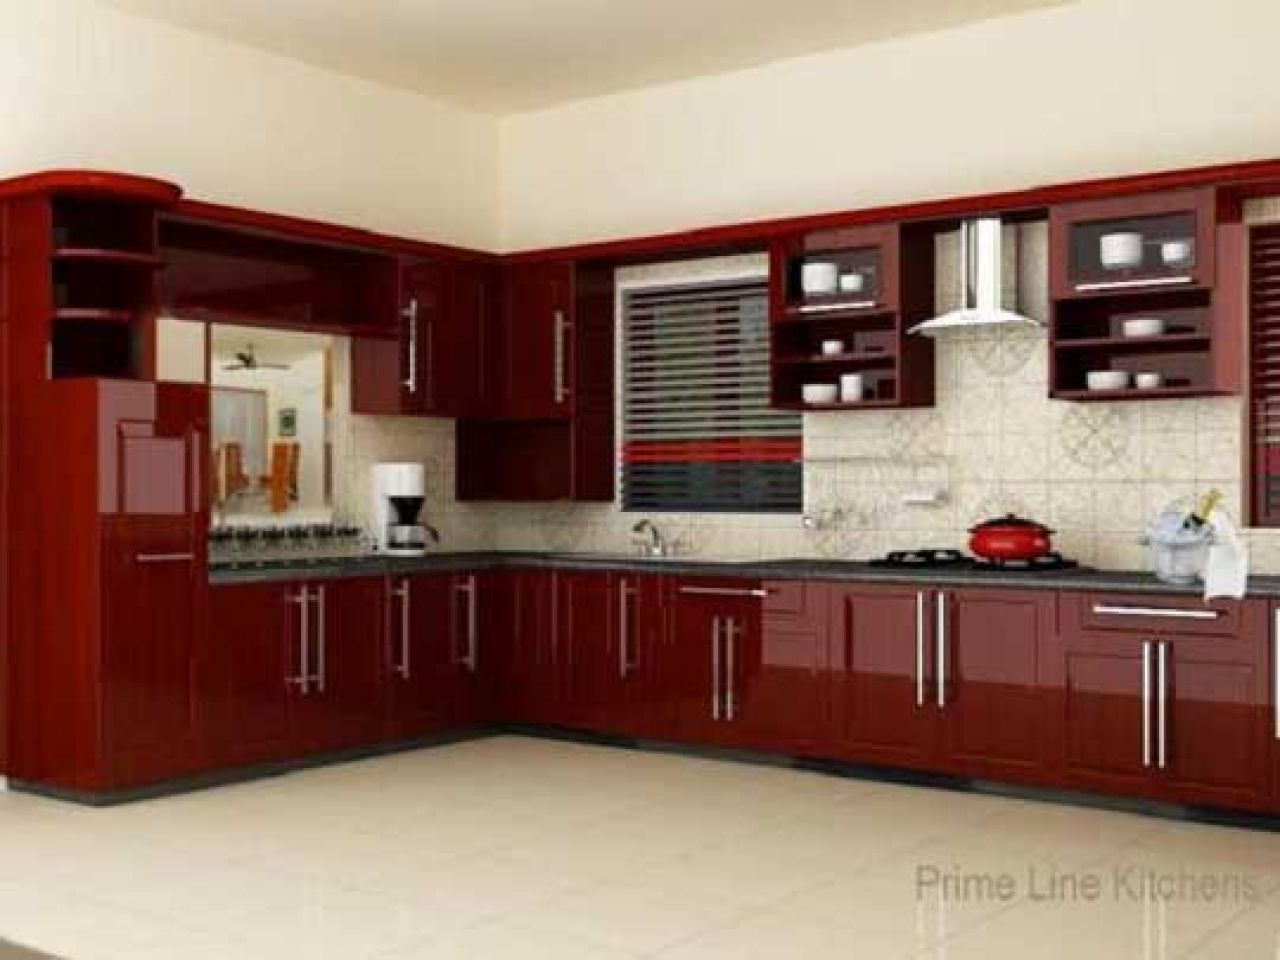 Genial New Model Kitchen Design Kerala Conexaowebmix.com